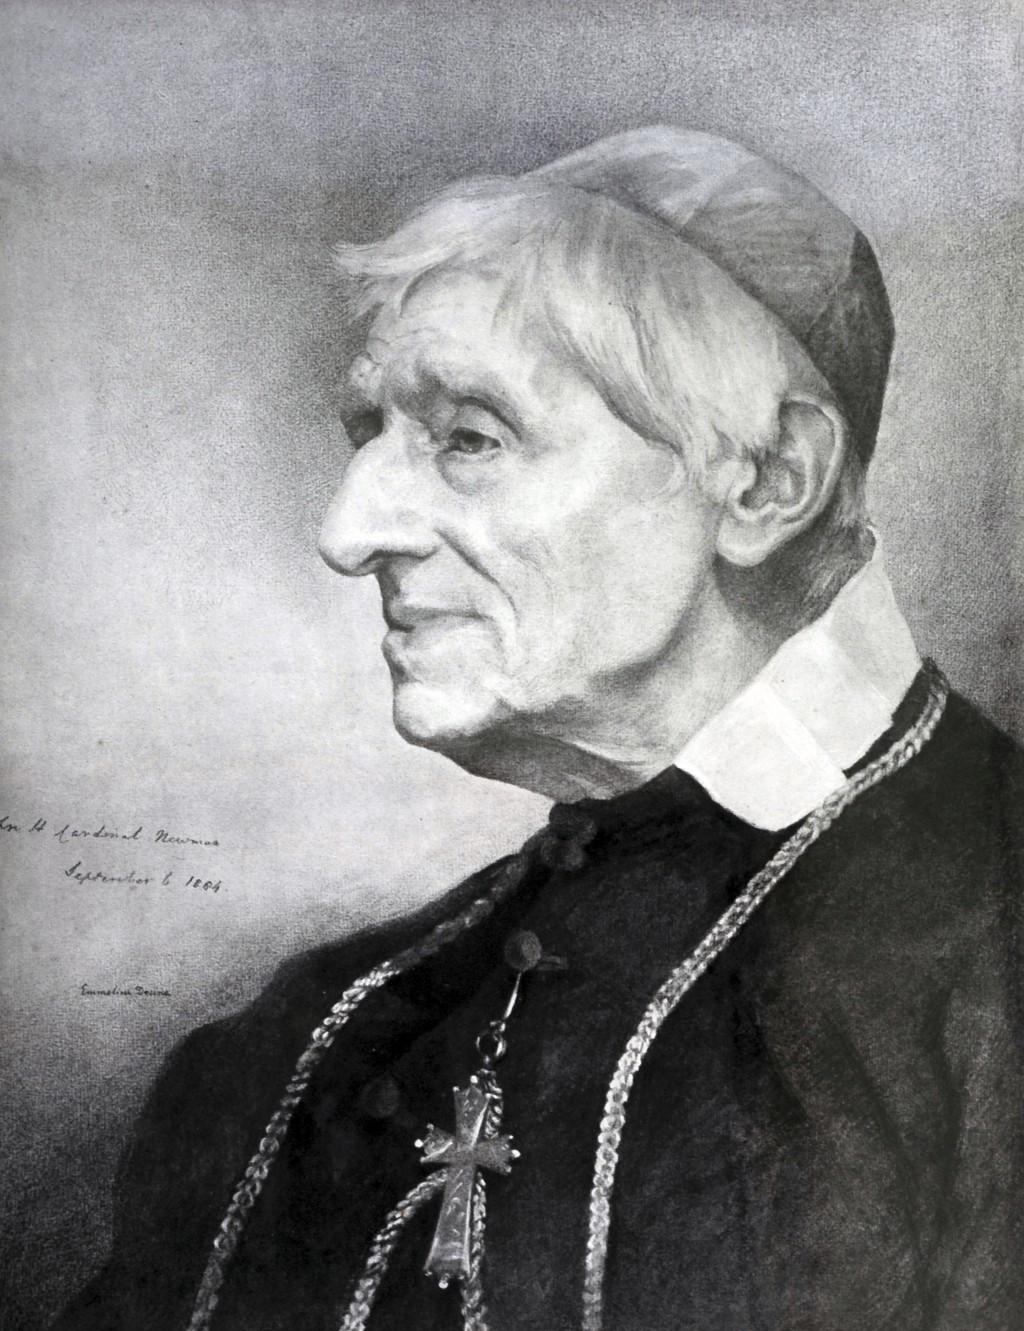 This undated photo provided Wednesday, Feb. 13, 2019 by the Catholic Trust for England and Wales shows a portrait of Cardinal John Henry Newman. The V